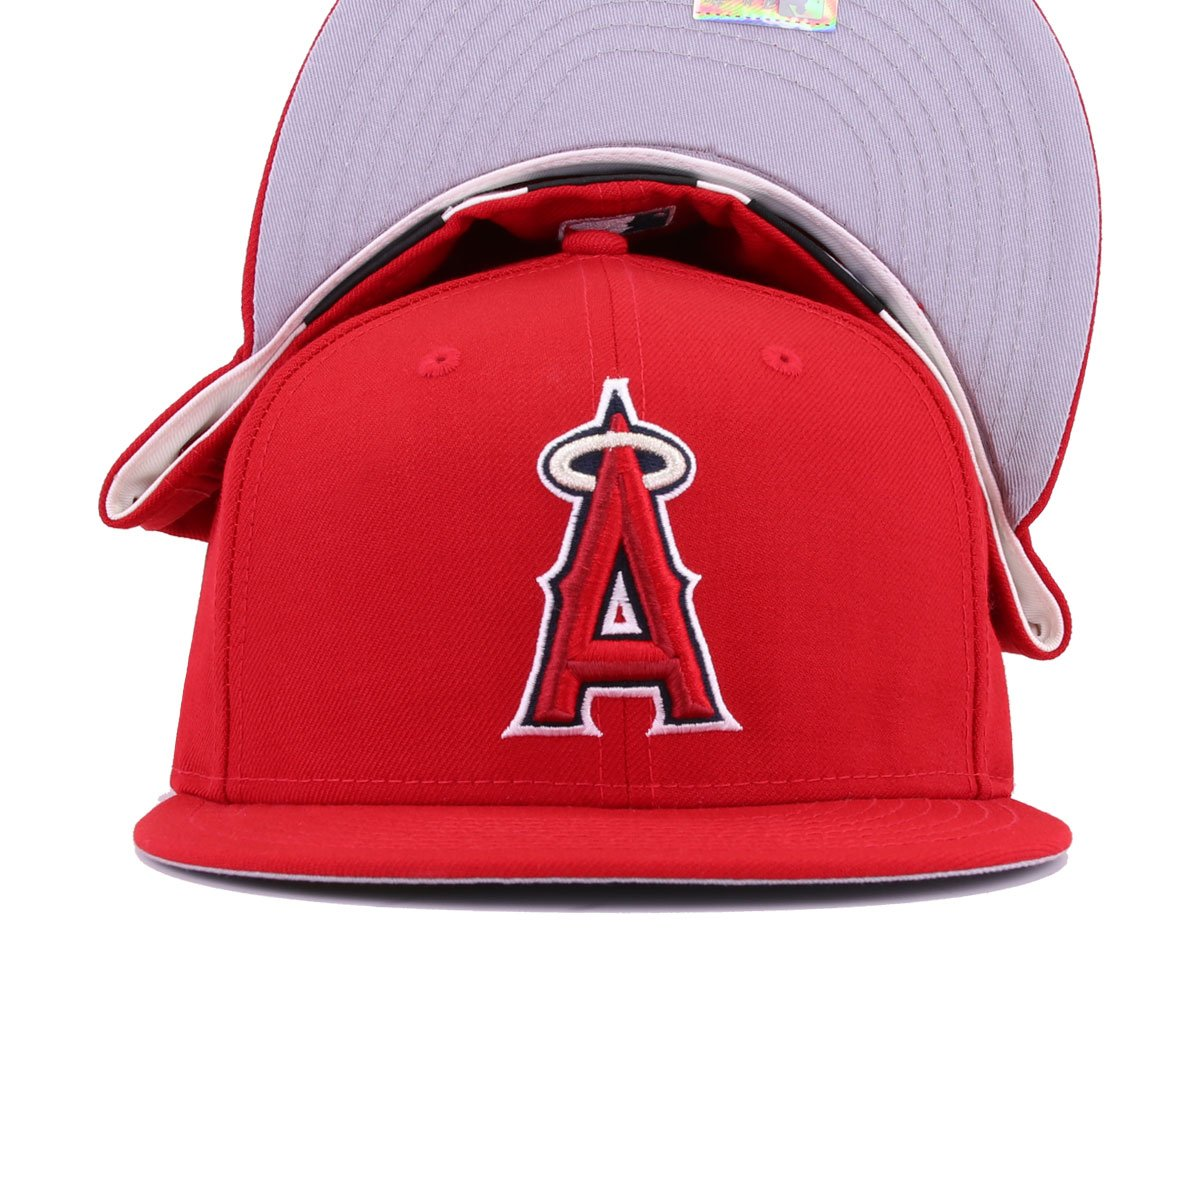 Los Angeles Angels Scarlet Cooperstown New Era 59Fifty Fitted